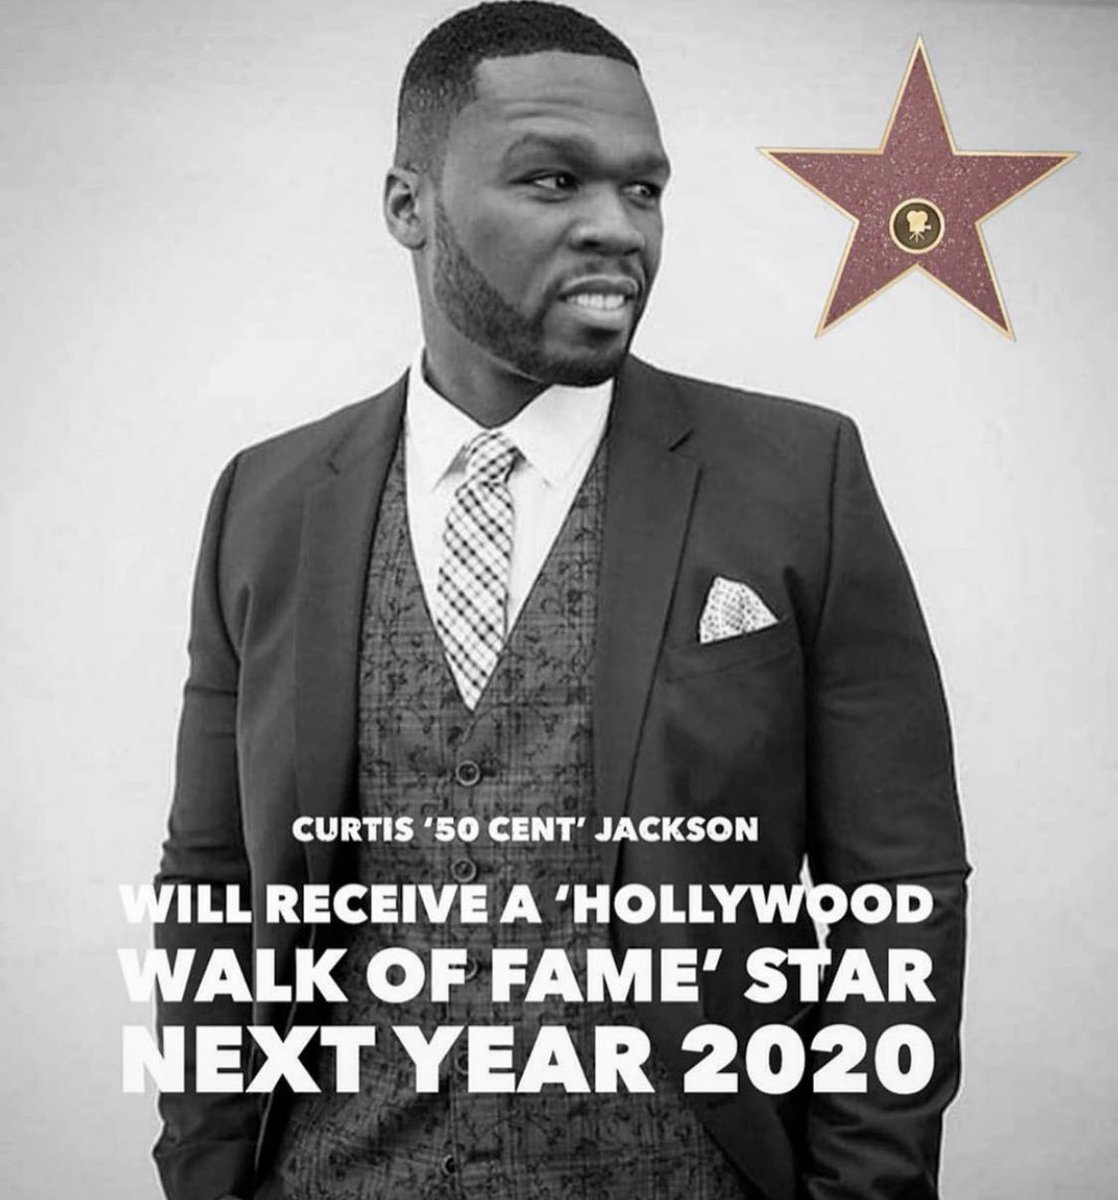 ????man this is some cool shit, ⭐️????⭐️????⭐️????⭐️????Mom, I think I made it. LOL#lecheminduroi #bransoncognac https://t.co/pGo14UlCOW